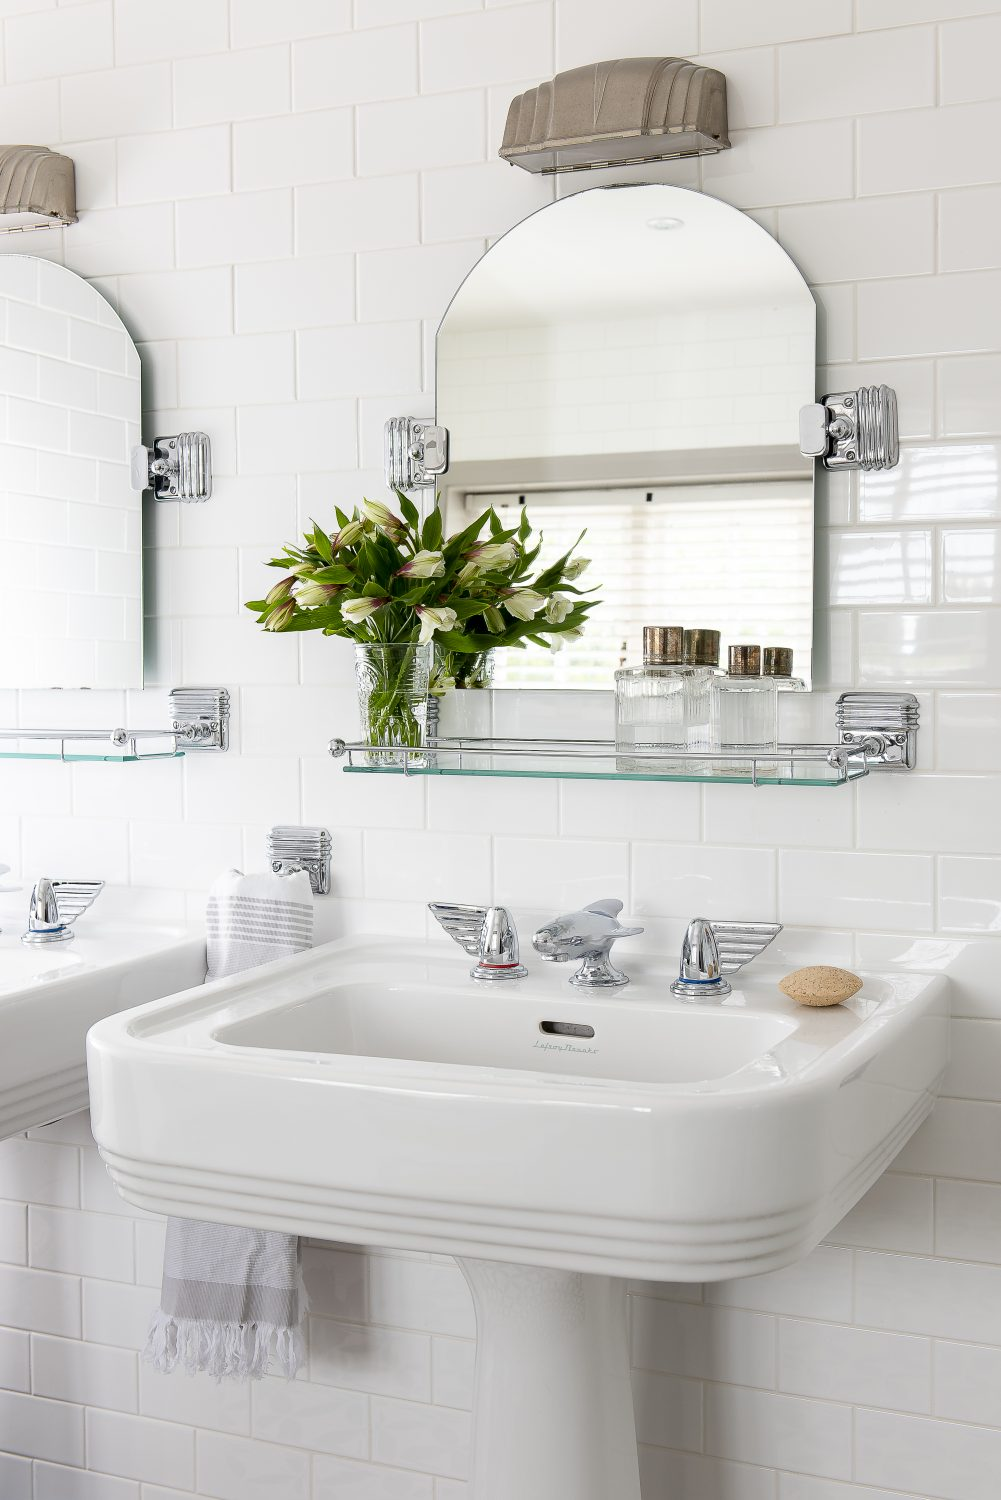 The bathroom, put in by the house's owners, features a pair of striking Art Deco-style basins and mirrors, with Chrysler-style taps by Lefroy Brooks